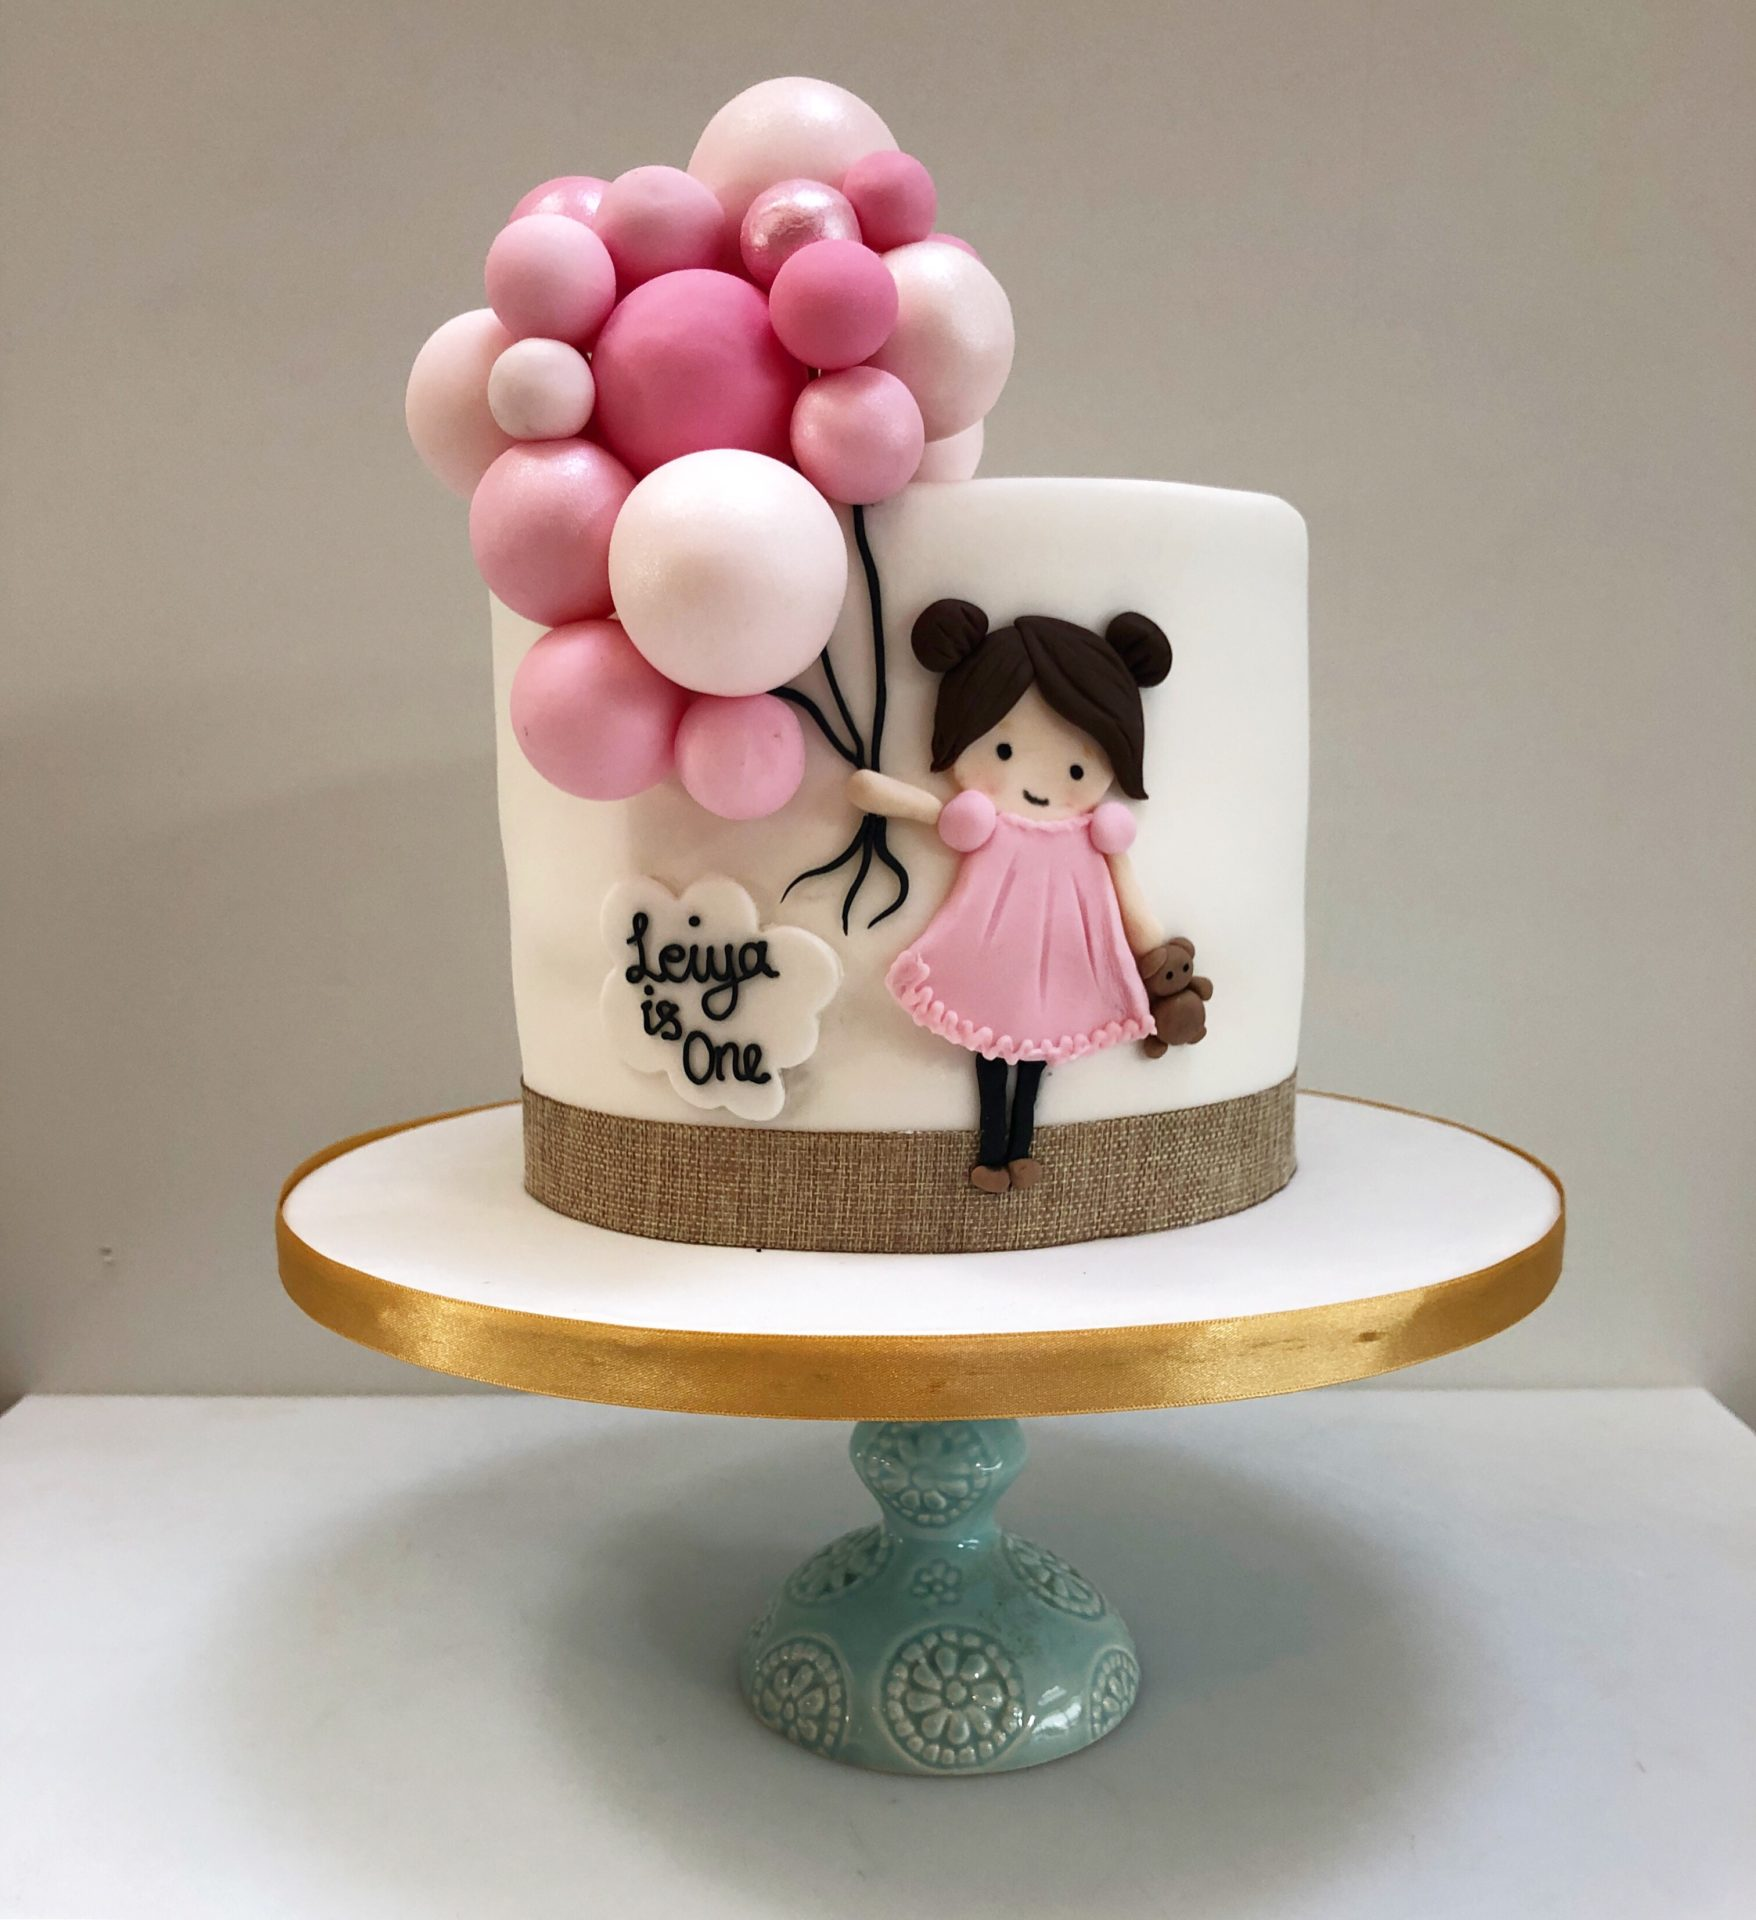 Sensational Bespoke Girl Birthday Cake London Etoile Bakery Personalised Birthday Cards Veneteletsinfo